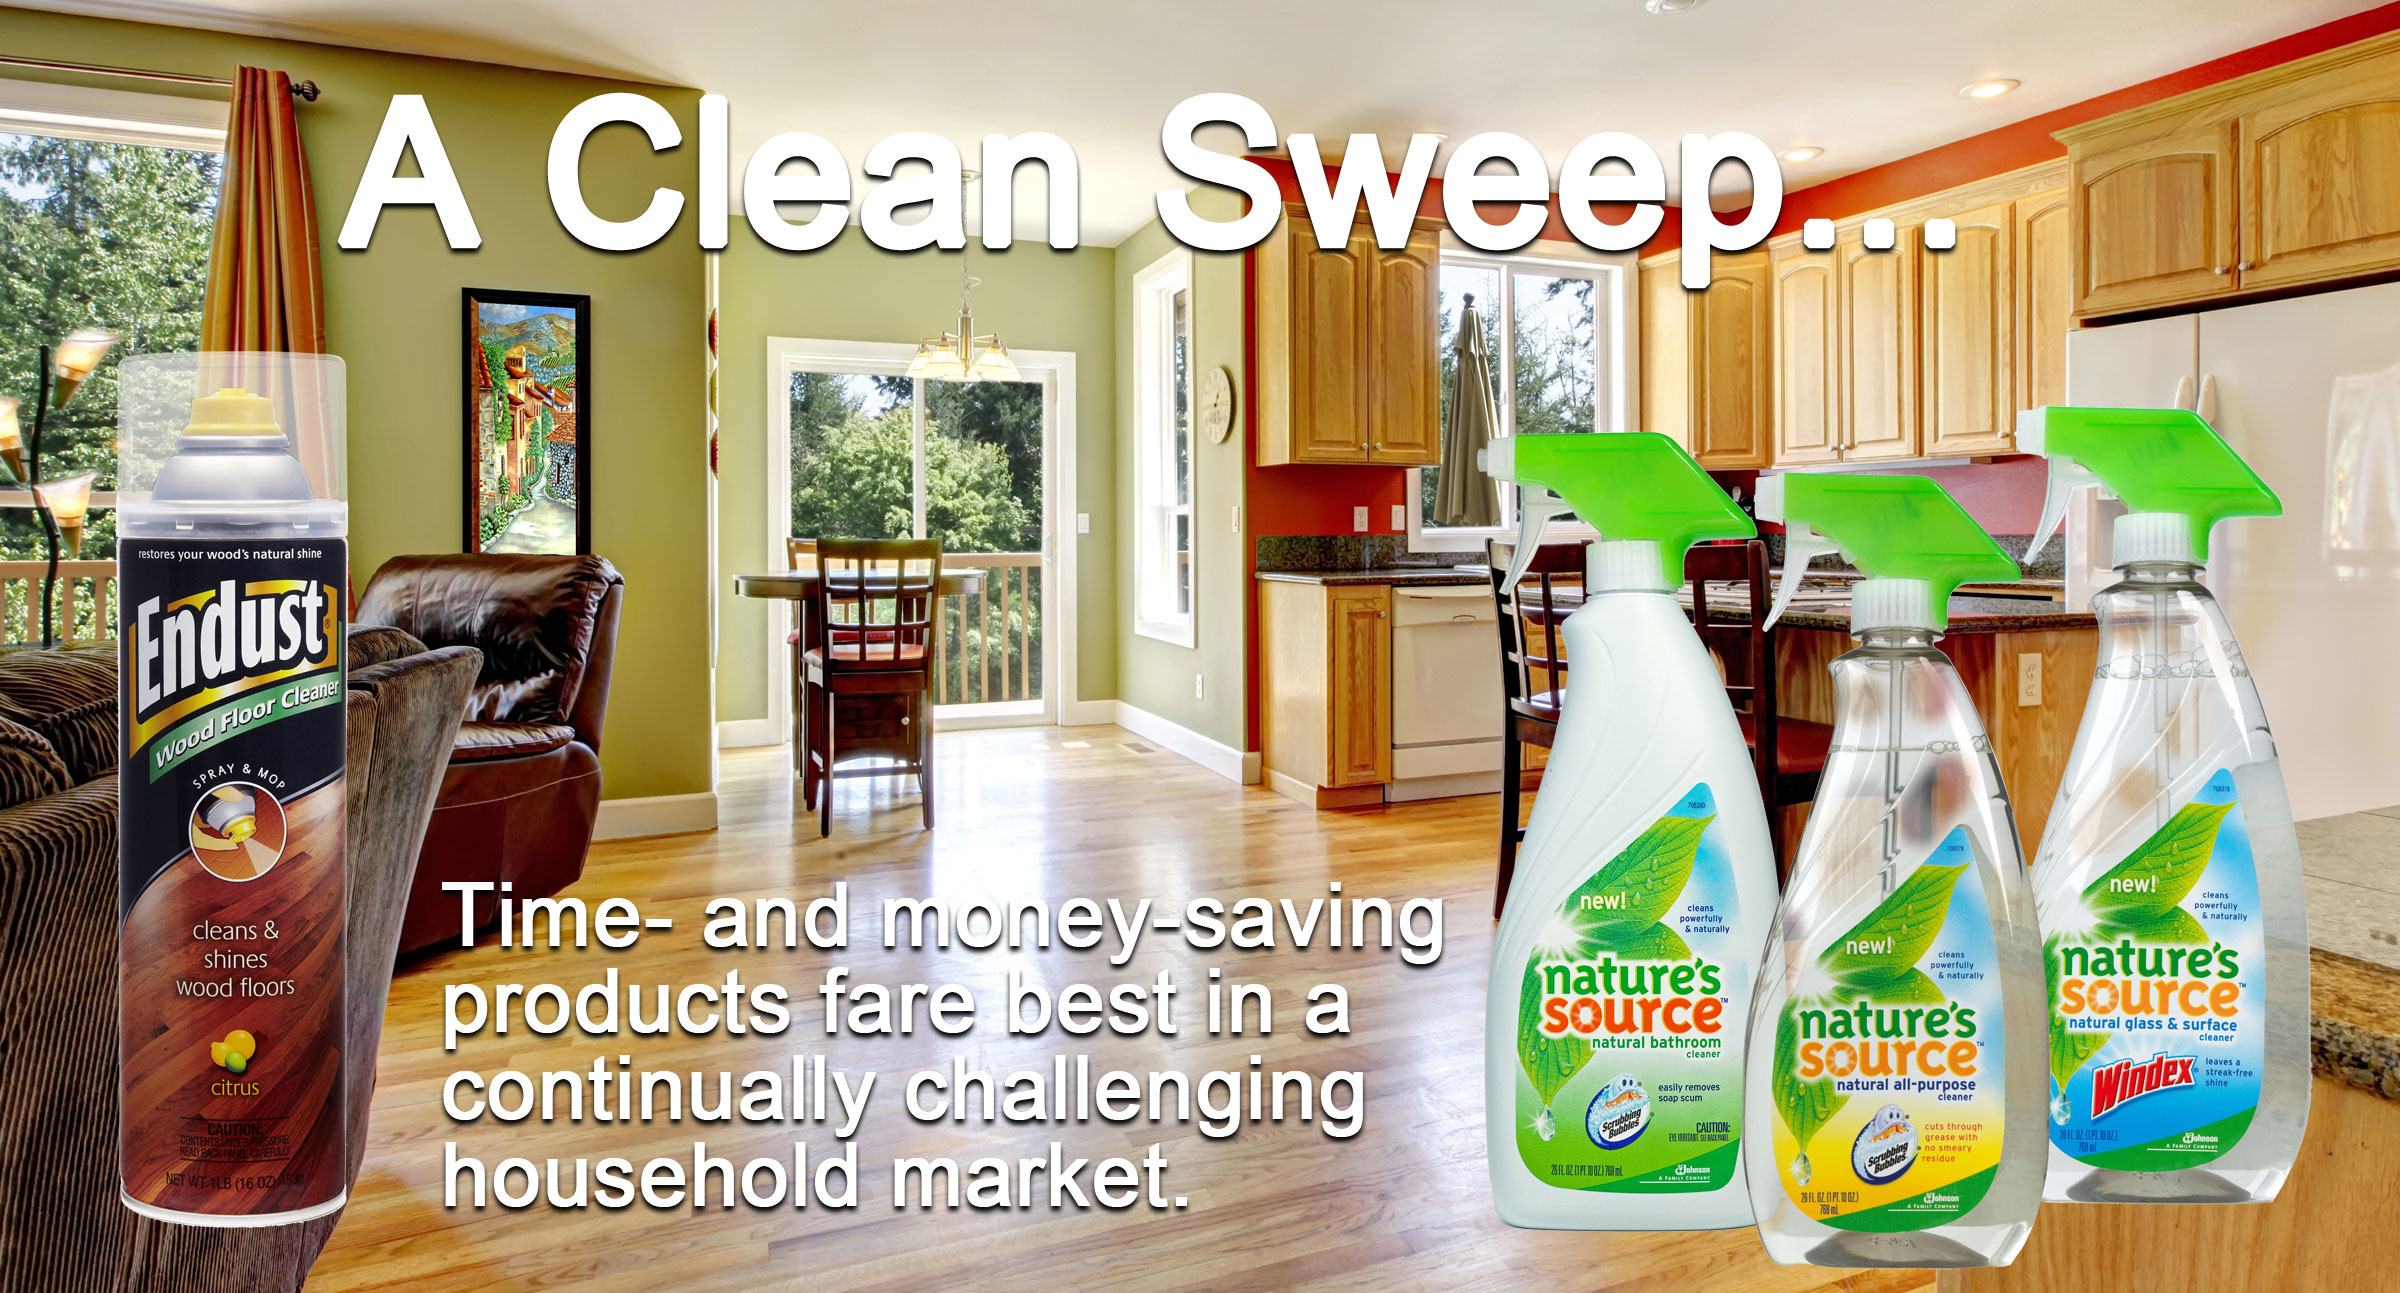 antoinette on twitter best bathroom cleaner the market spray